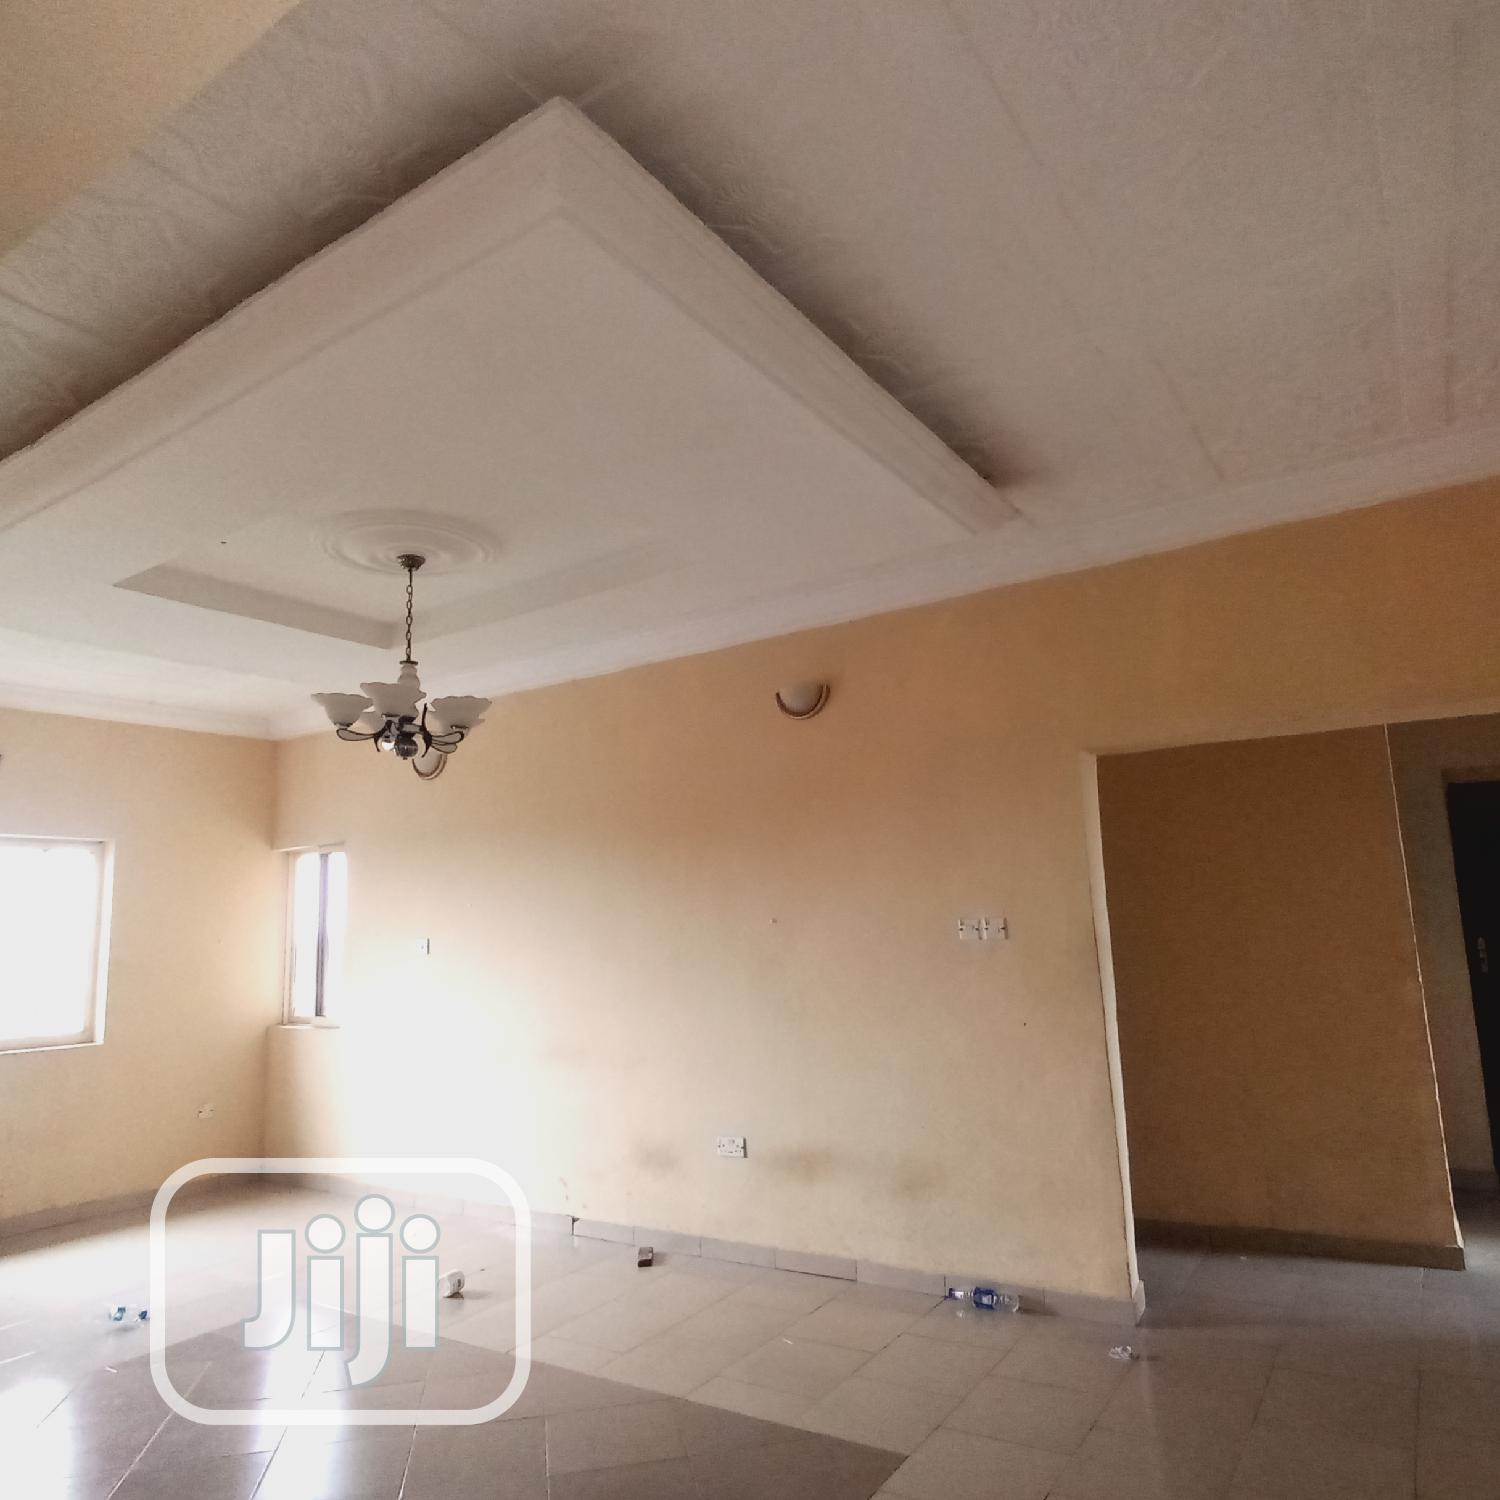 3bdrm Block of Flats in Off Lekki-Epe Expressway for Rent   Houses & Apartments For Rent for sale in Off Lekki-Epe Expressway, Ajah, Nigeria